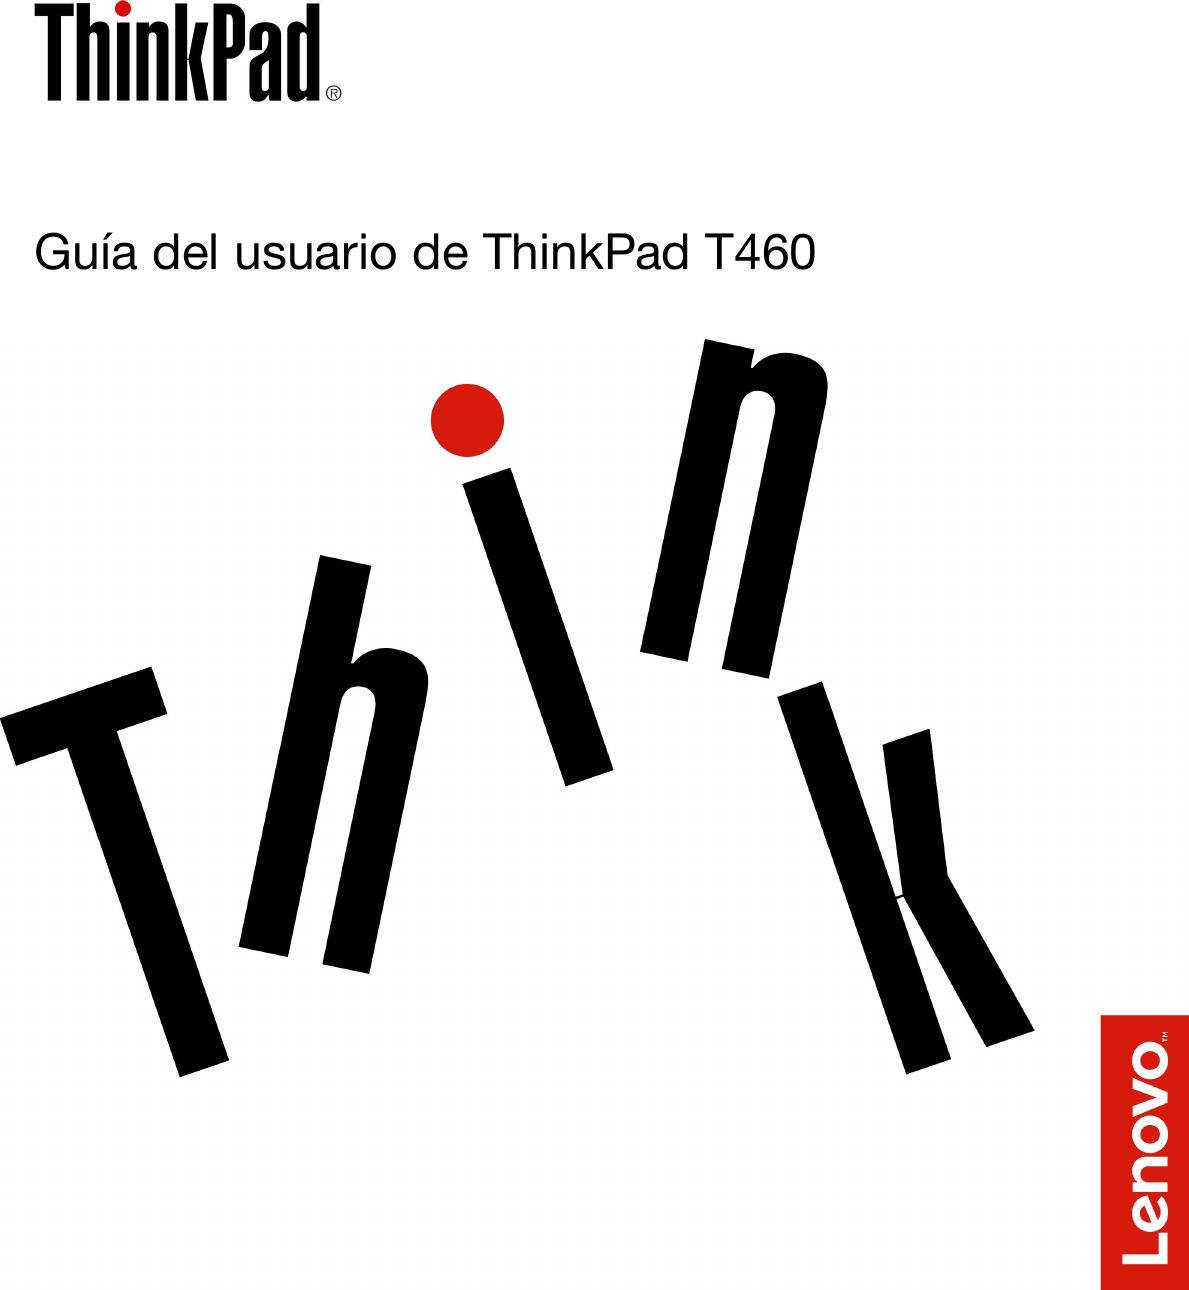 Lenovo T460 Ug Es User Manual (Spanish) Guide Think Pad